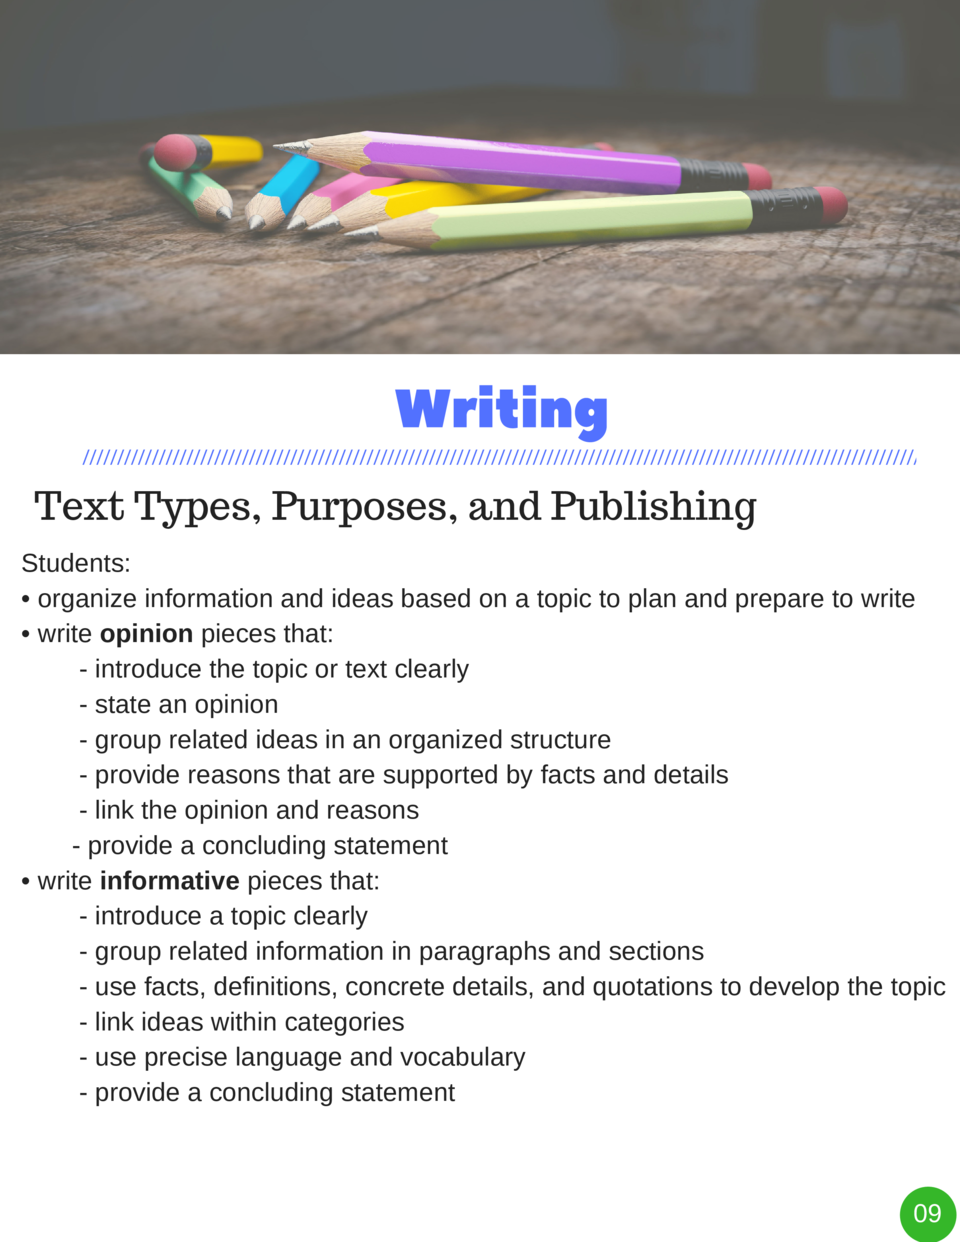 Writing Text Types, Purposes, and Publishing Students      organize information and ideas based on a topic to plan and pre...